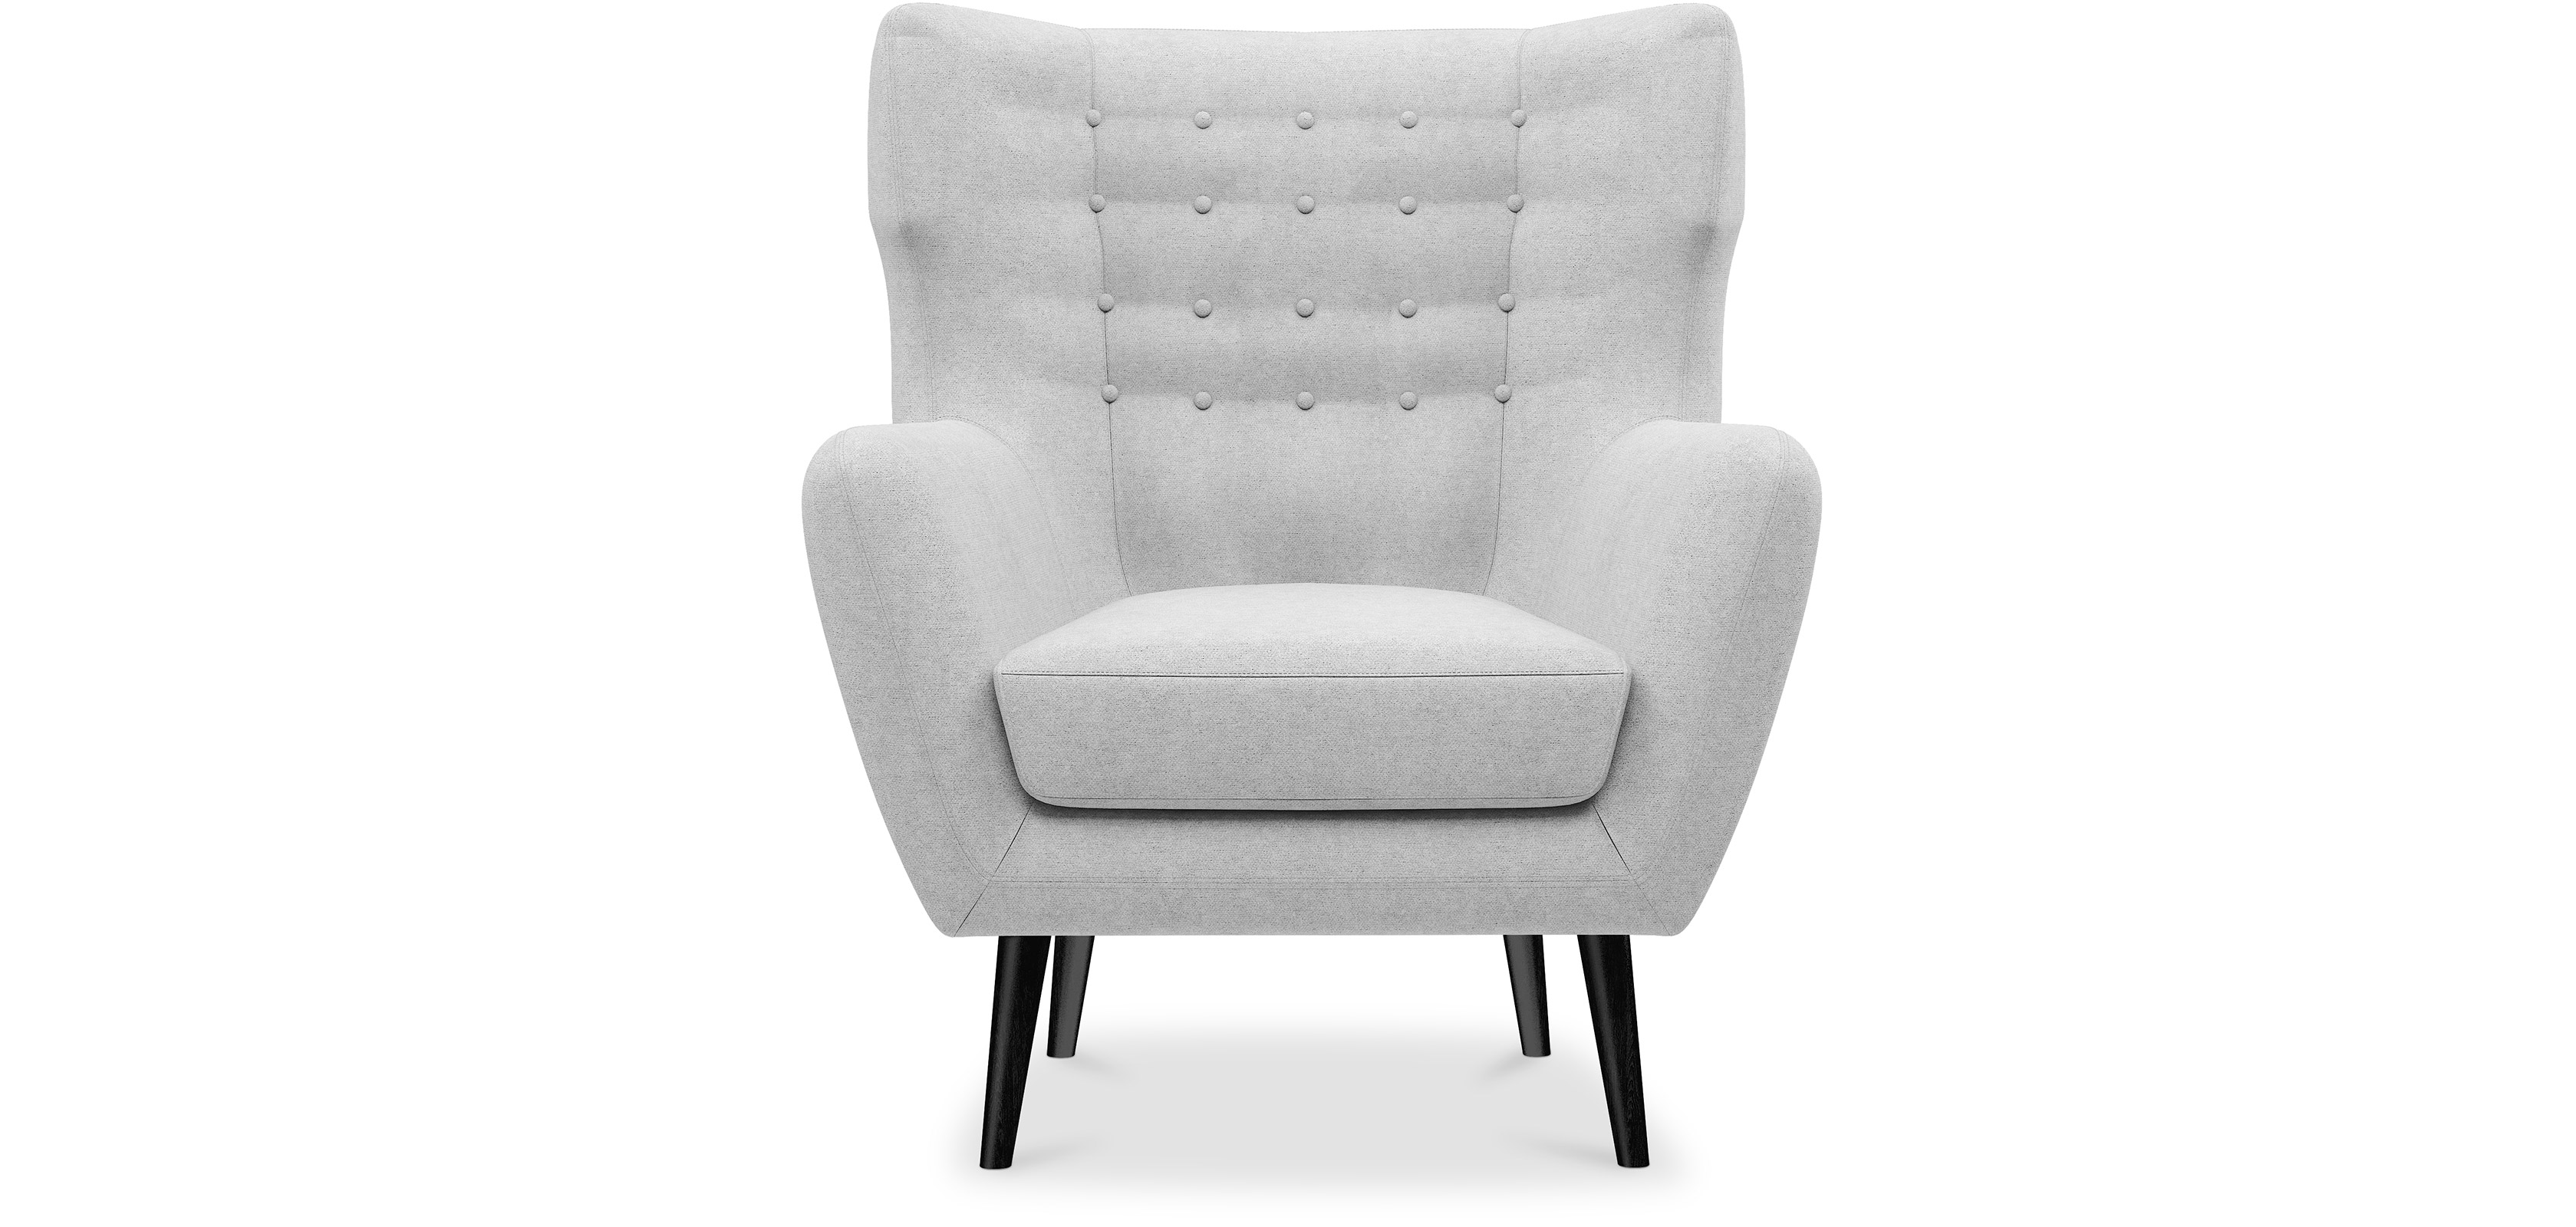 fauteuil style scandinave thor - Fauteuil Style Scandinave